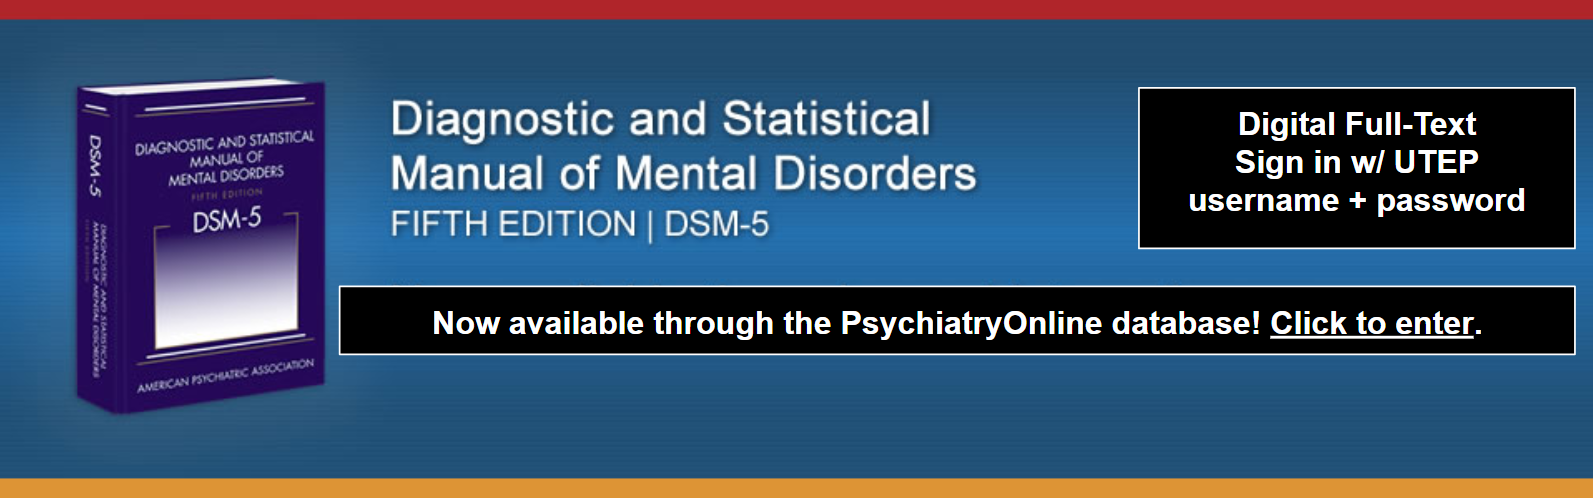 click here to enter Psychiatry Online, the UTEP Library's database with the full digital text of the DSM 5